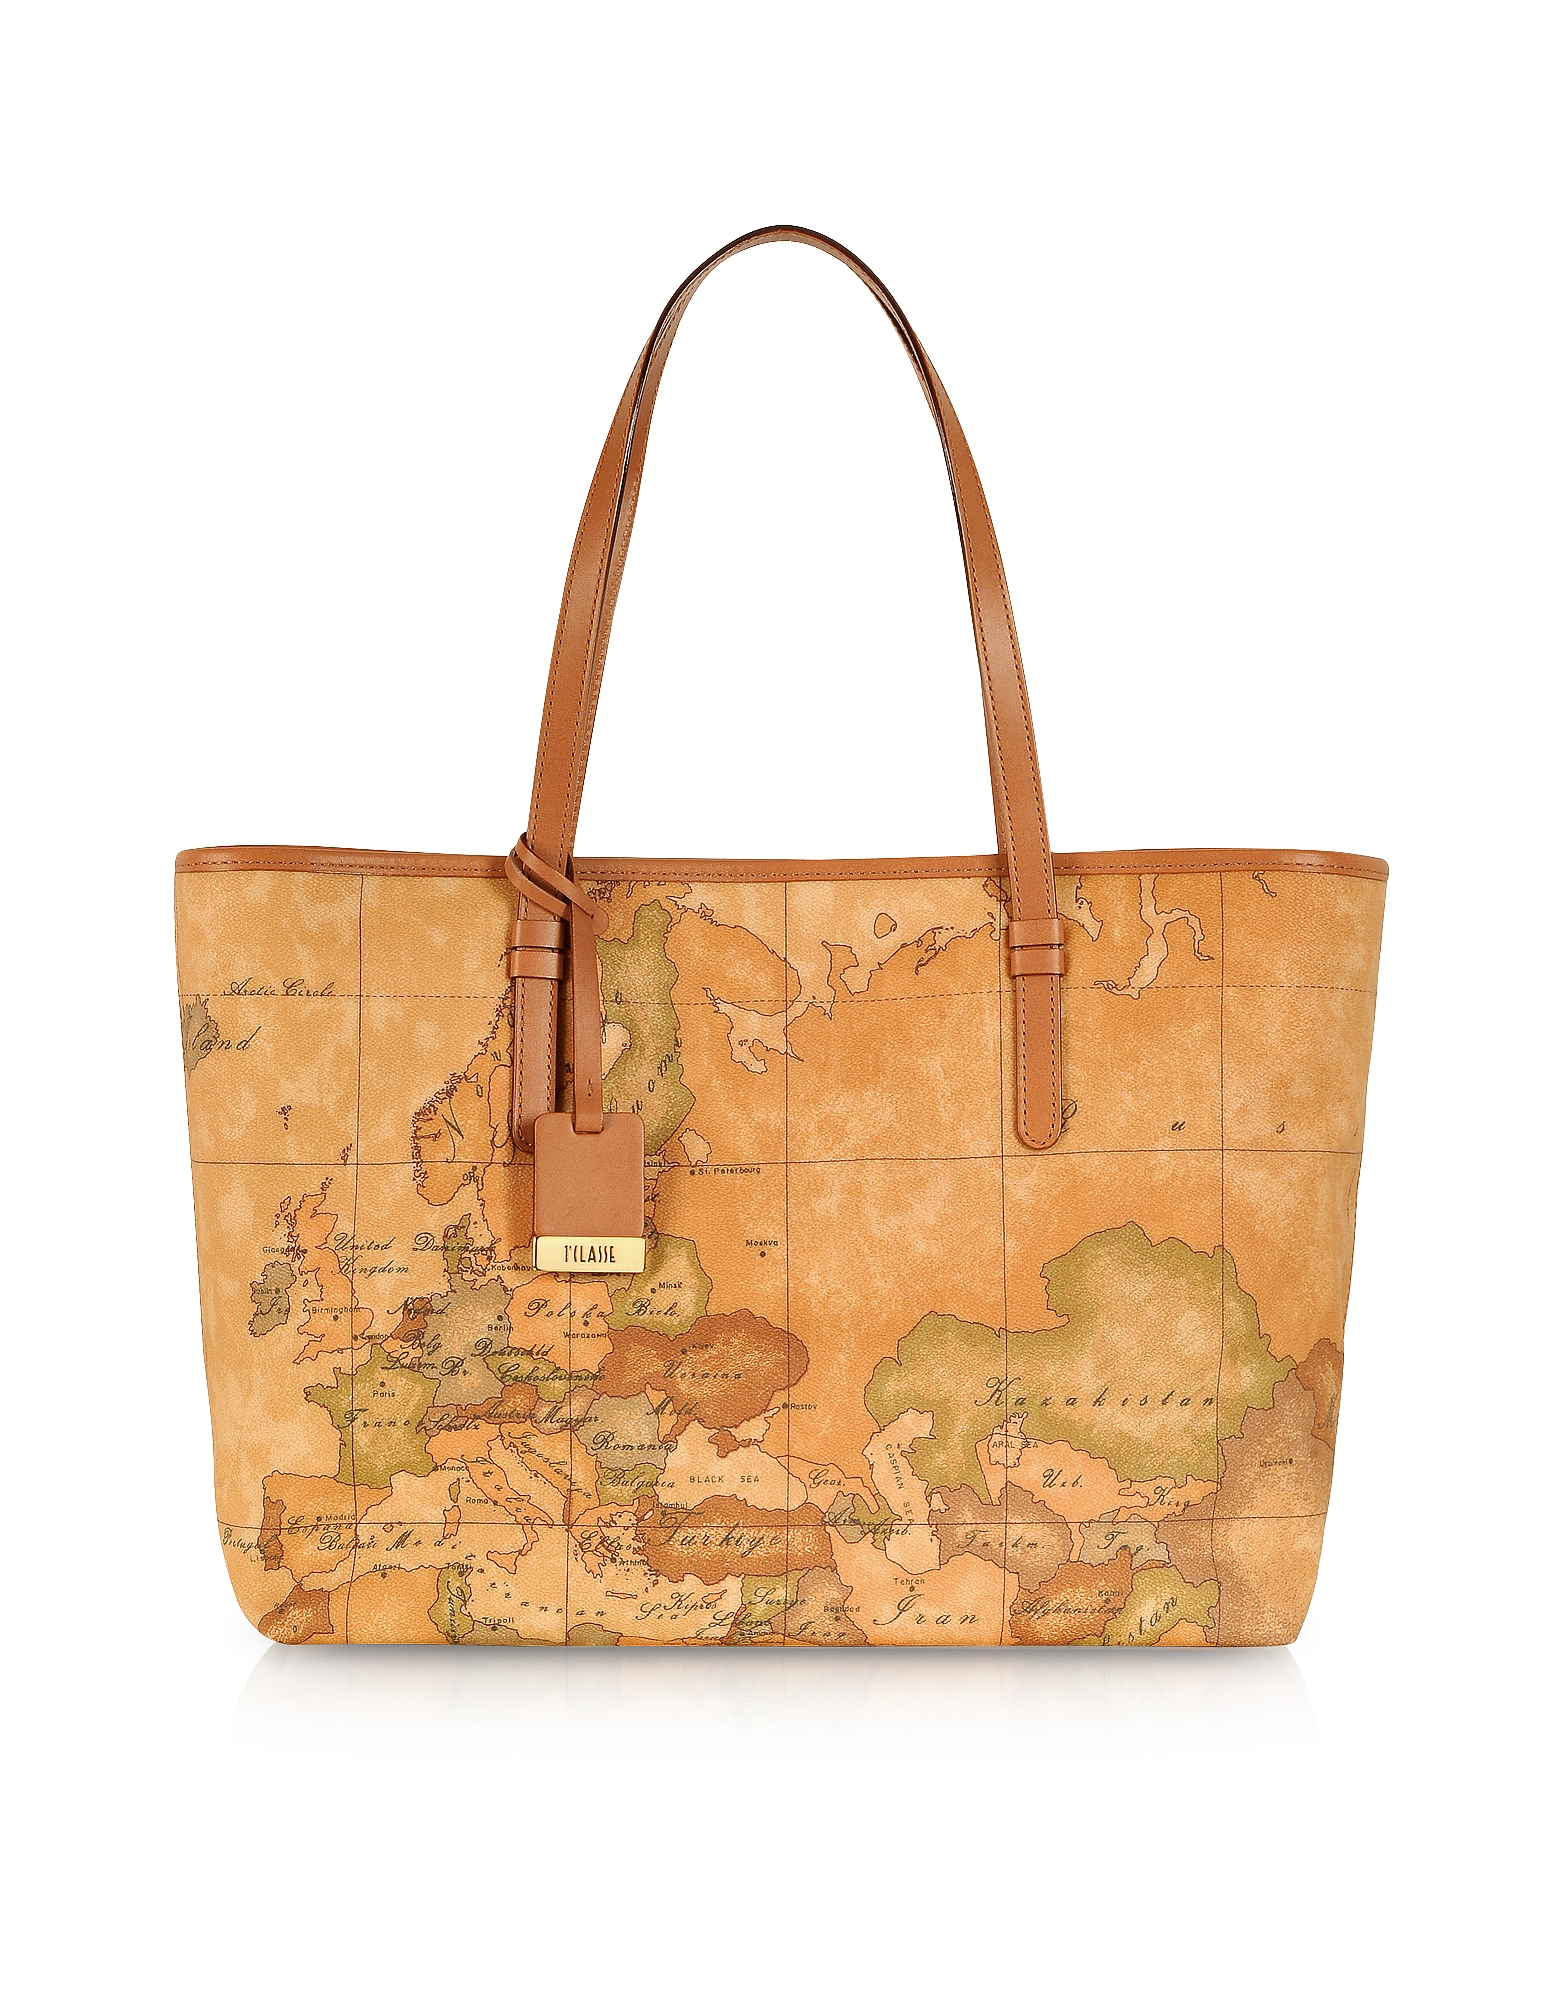 Alviero Martini 1A Classe Handbags, 1a Prima Classe - Geo Printed Large 'New Basic' Tote Bag